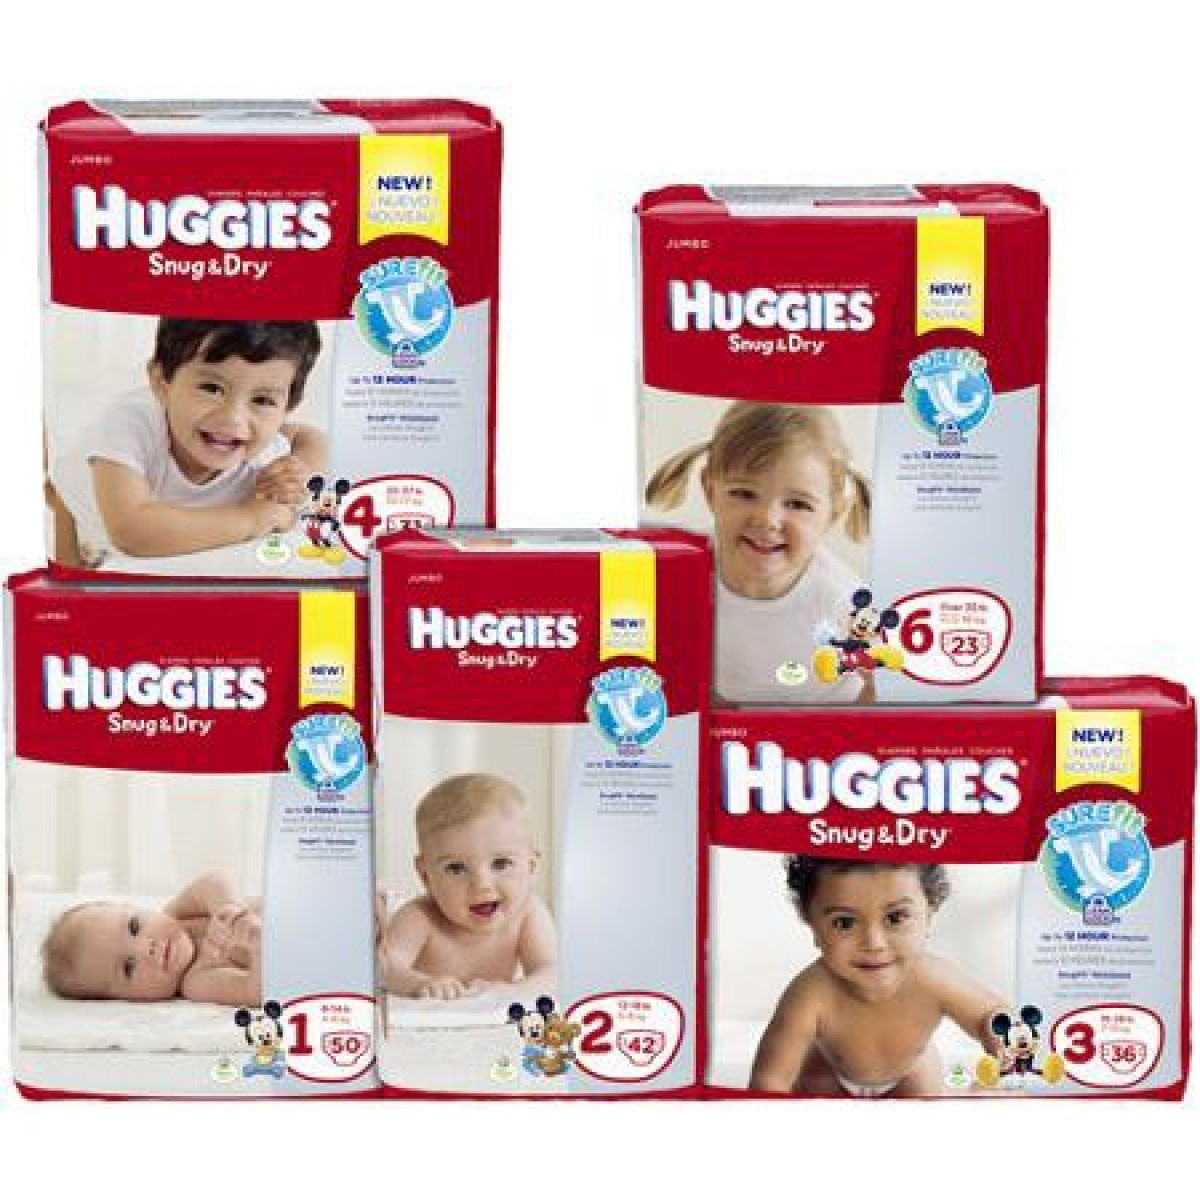 Snug & Dry Tab Closure Baby Diaper Heavy Absorbency Size 3 - 36431